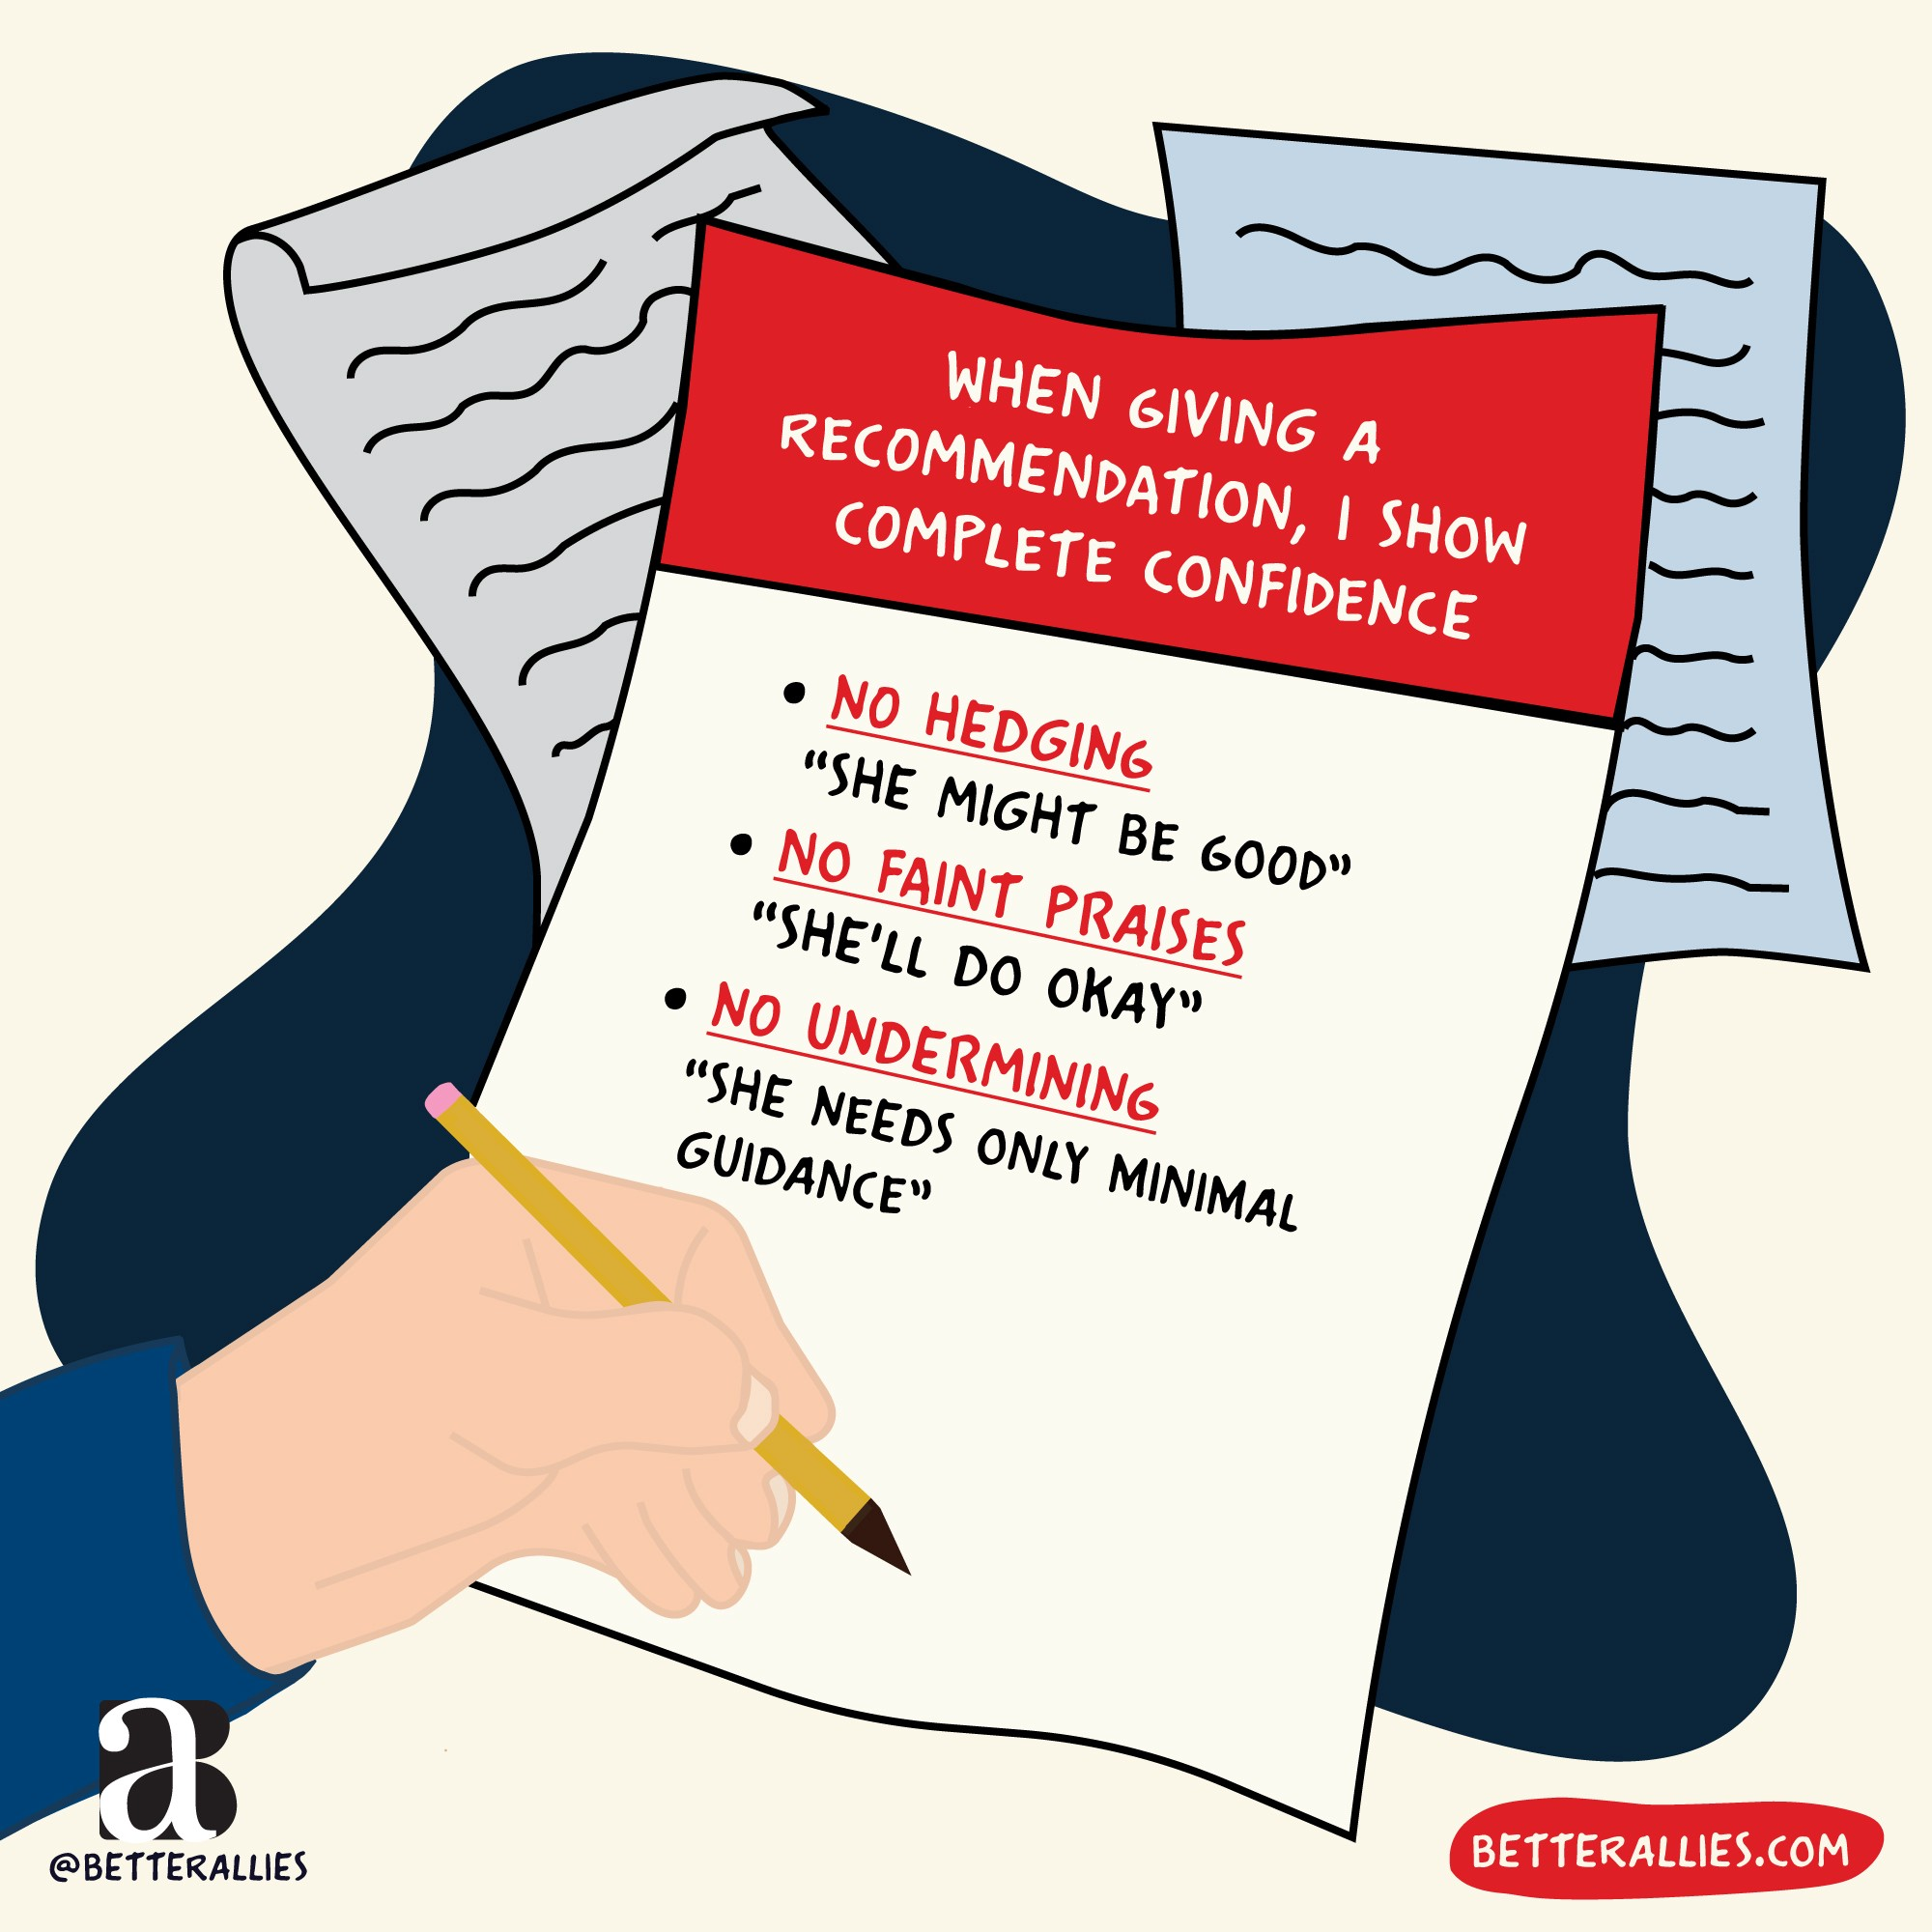 Hand writing on paper: Give recommendations with Confidence: No Hedging, No faint praises, No undermining.